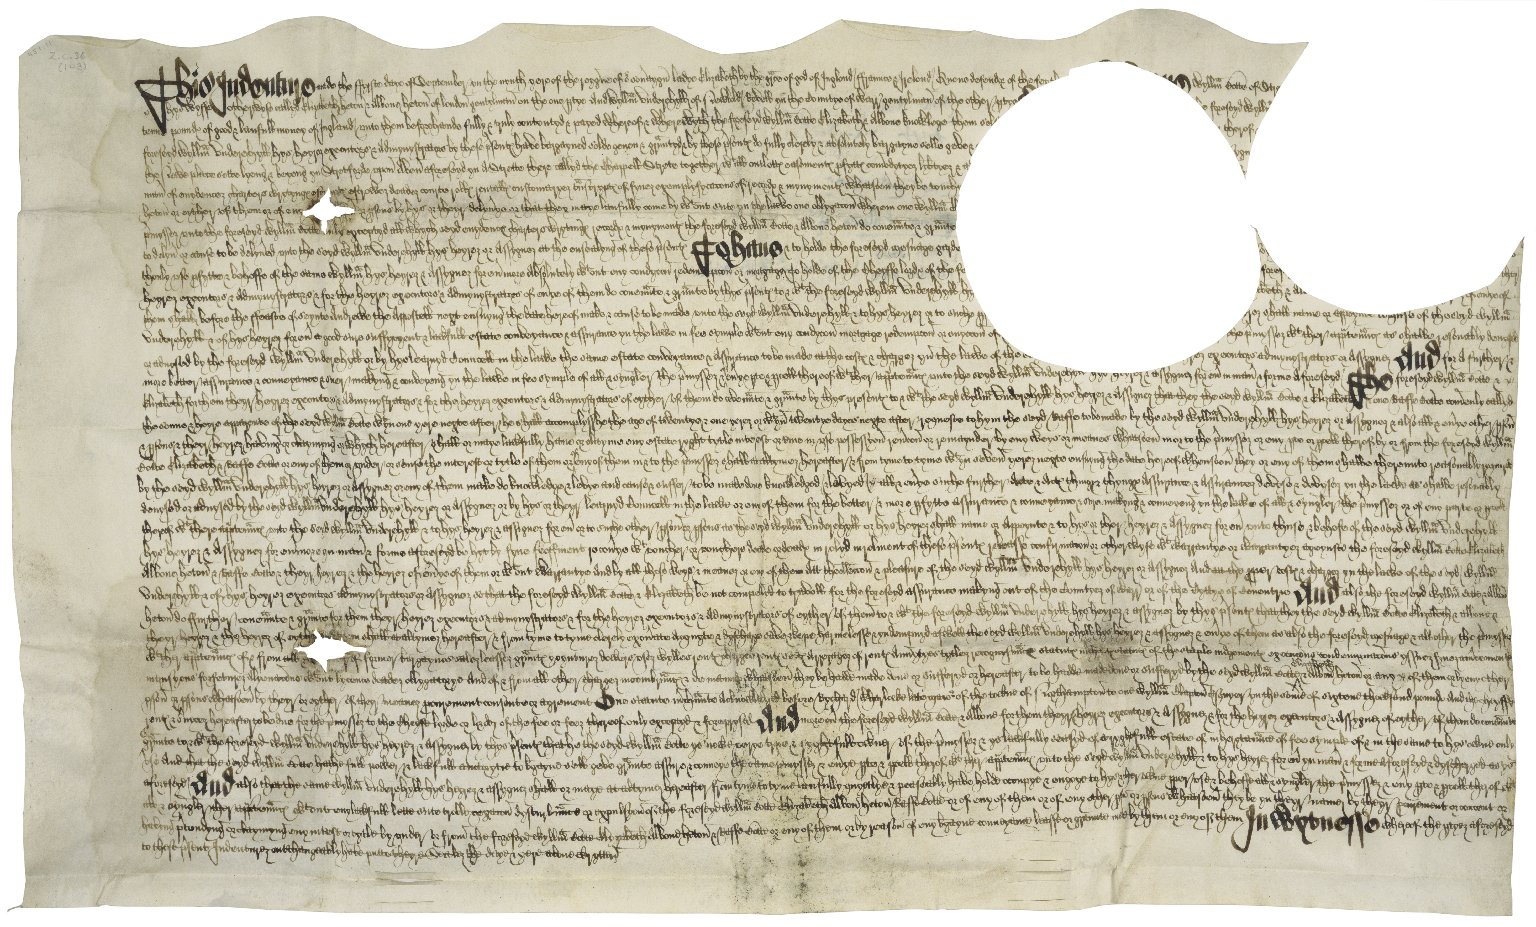 Bargain and sale from William Botte to William Underehyll of Newbold Revel, Warwickshire, Gent. [manuscript], 1567 September 1.